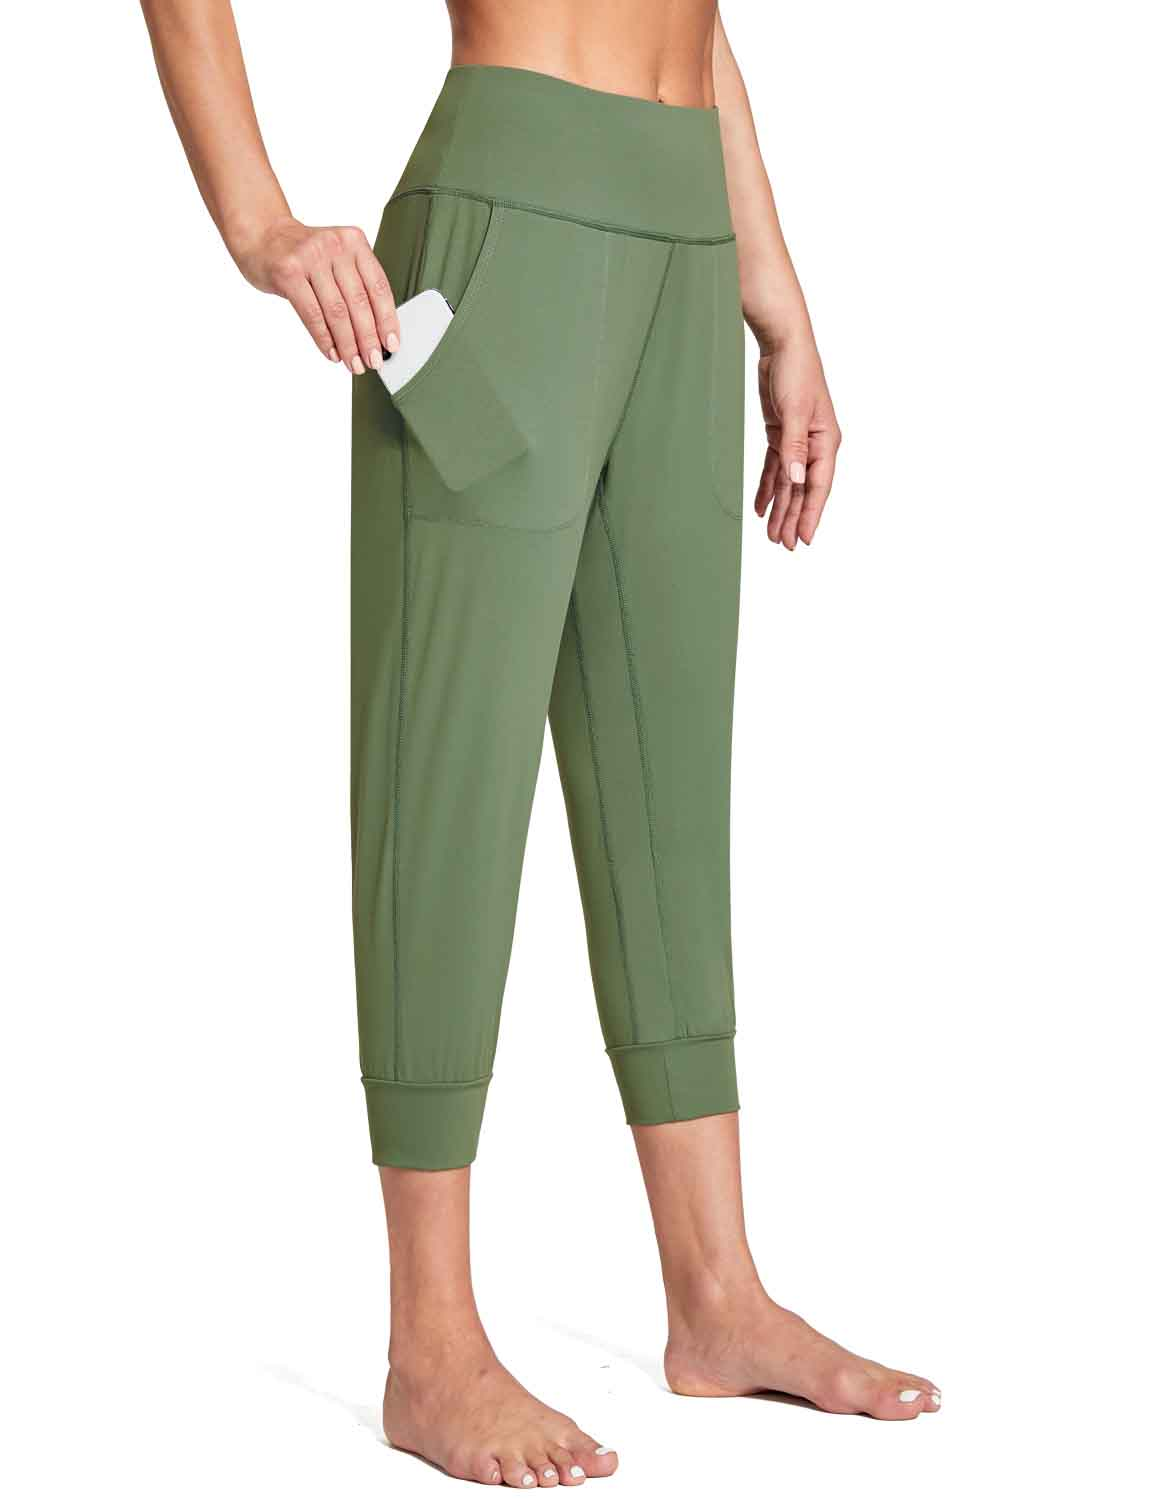 Baleaf Women's High Rise Soft Cropped Workout Pockets Joggers green side